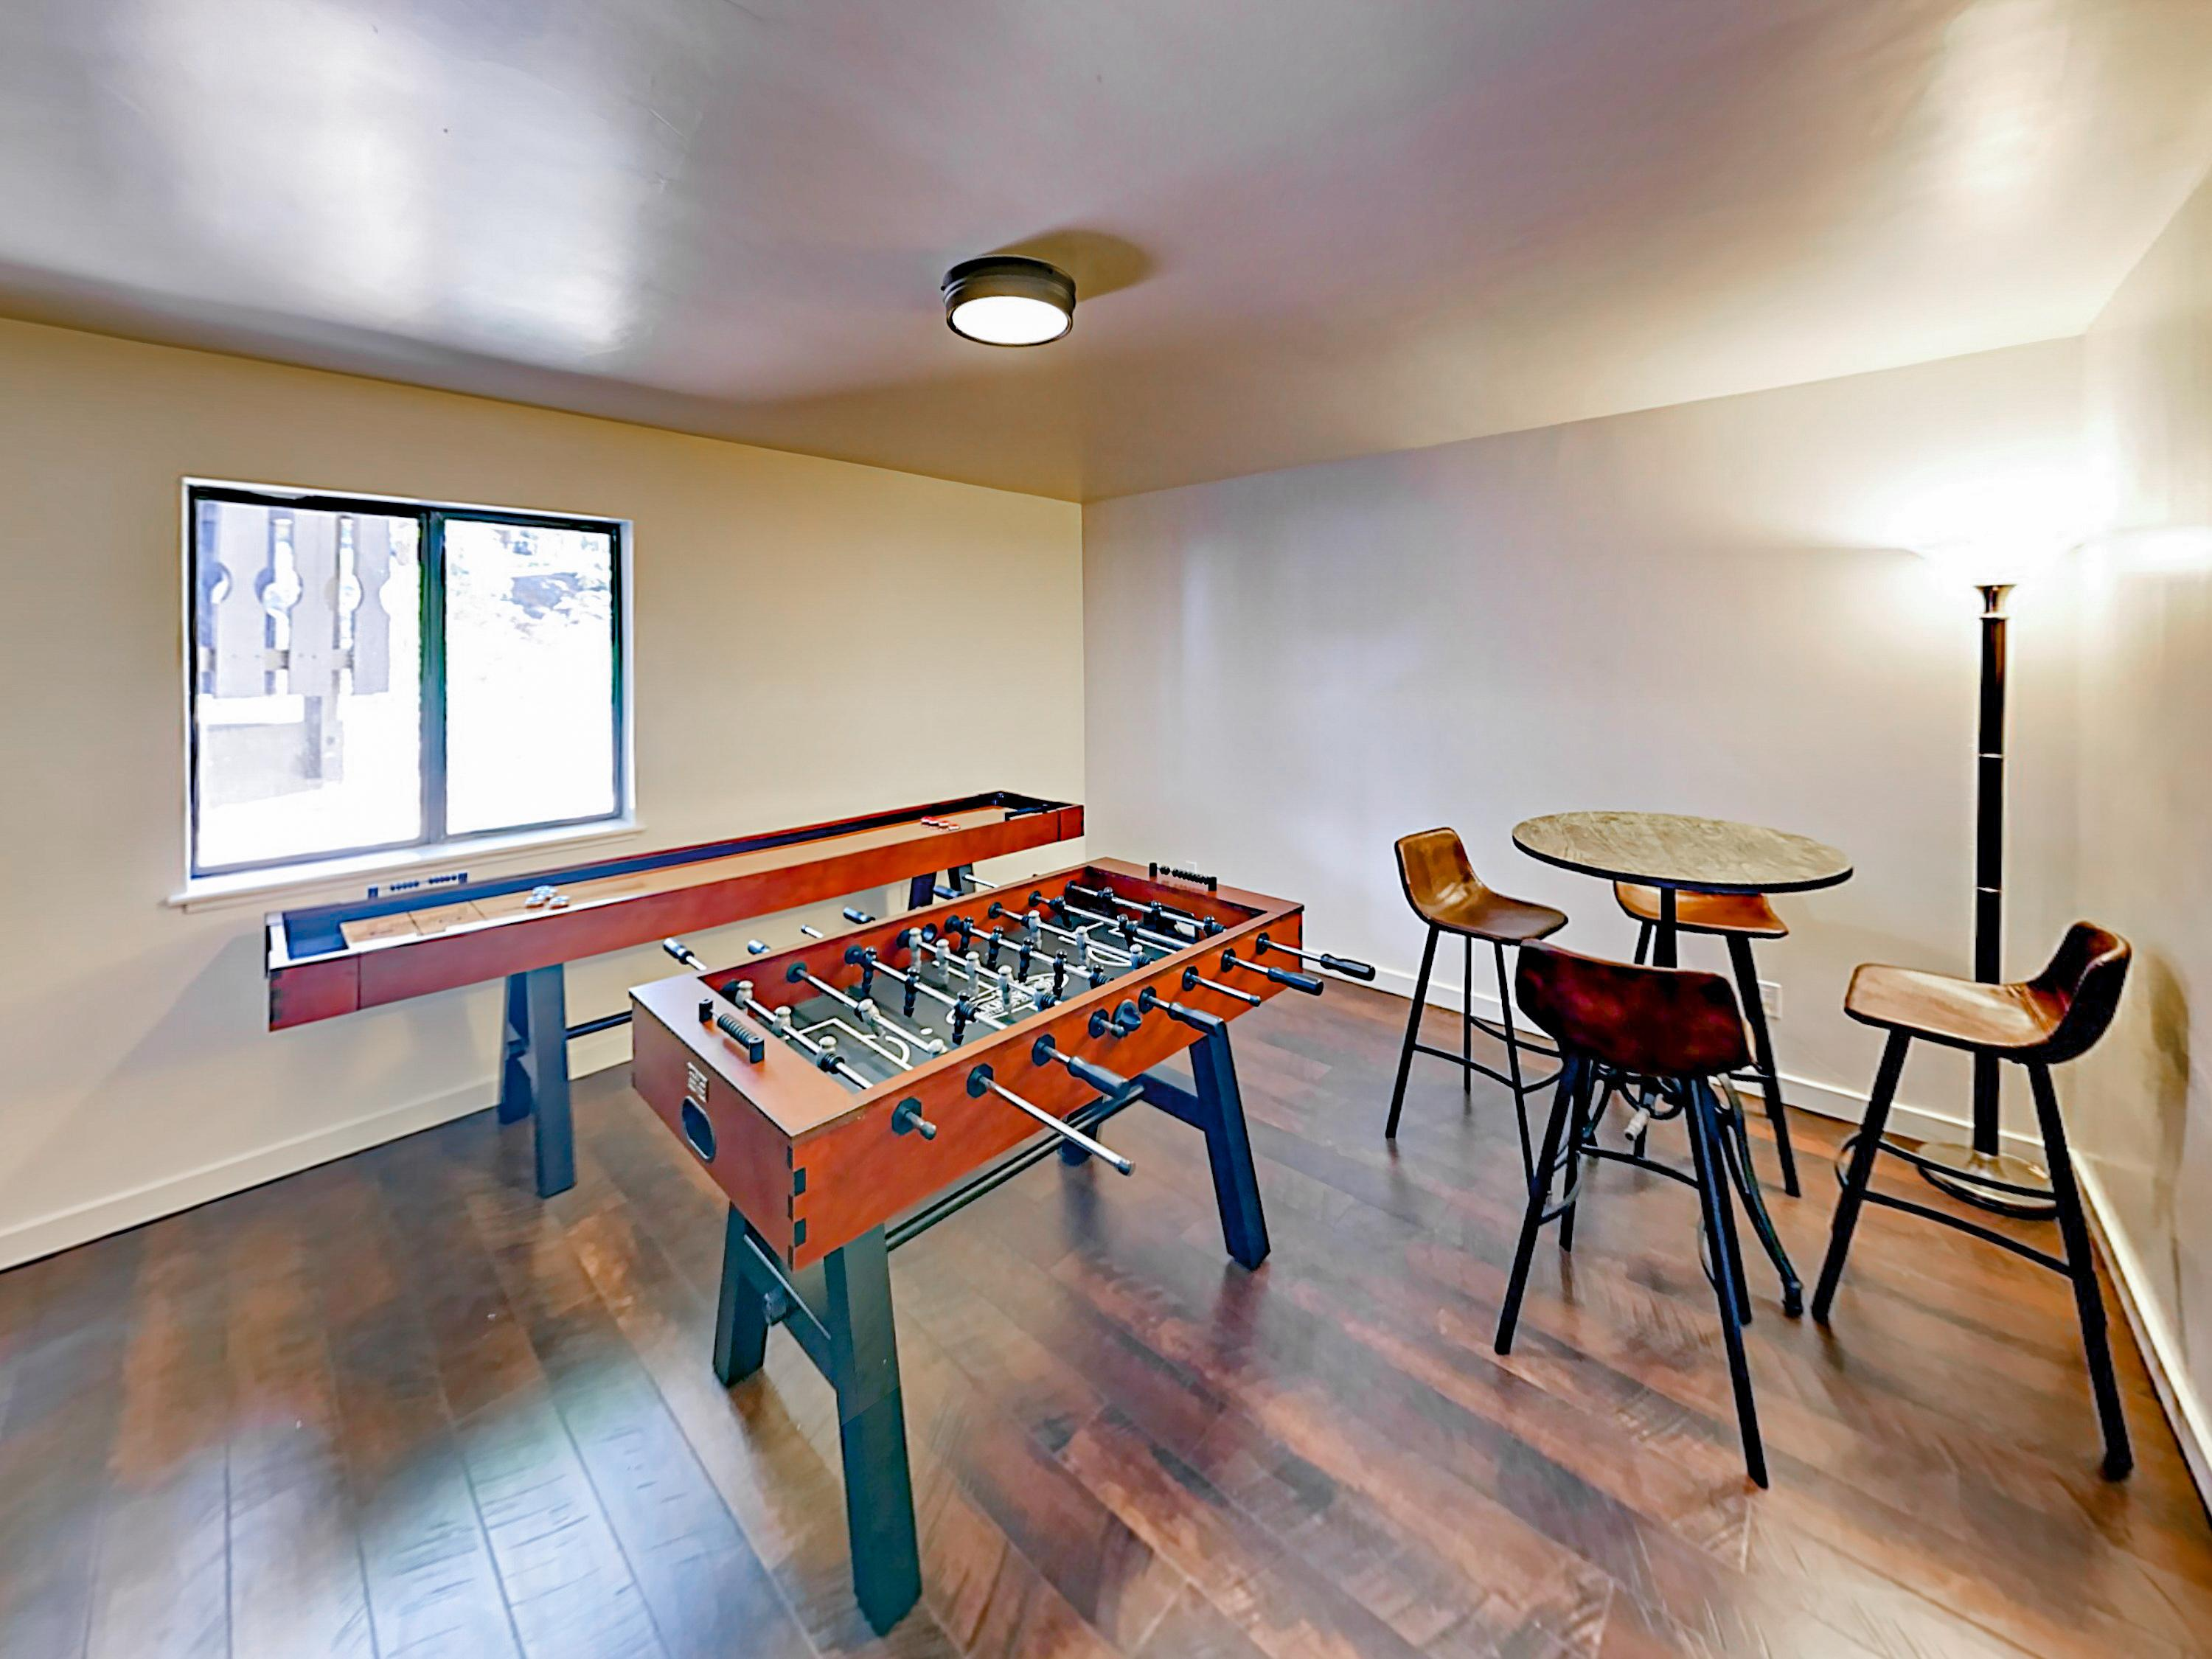 A game room on the lower level offers shuffleboard and foosball.